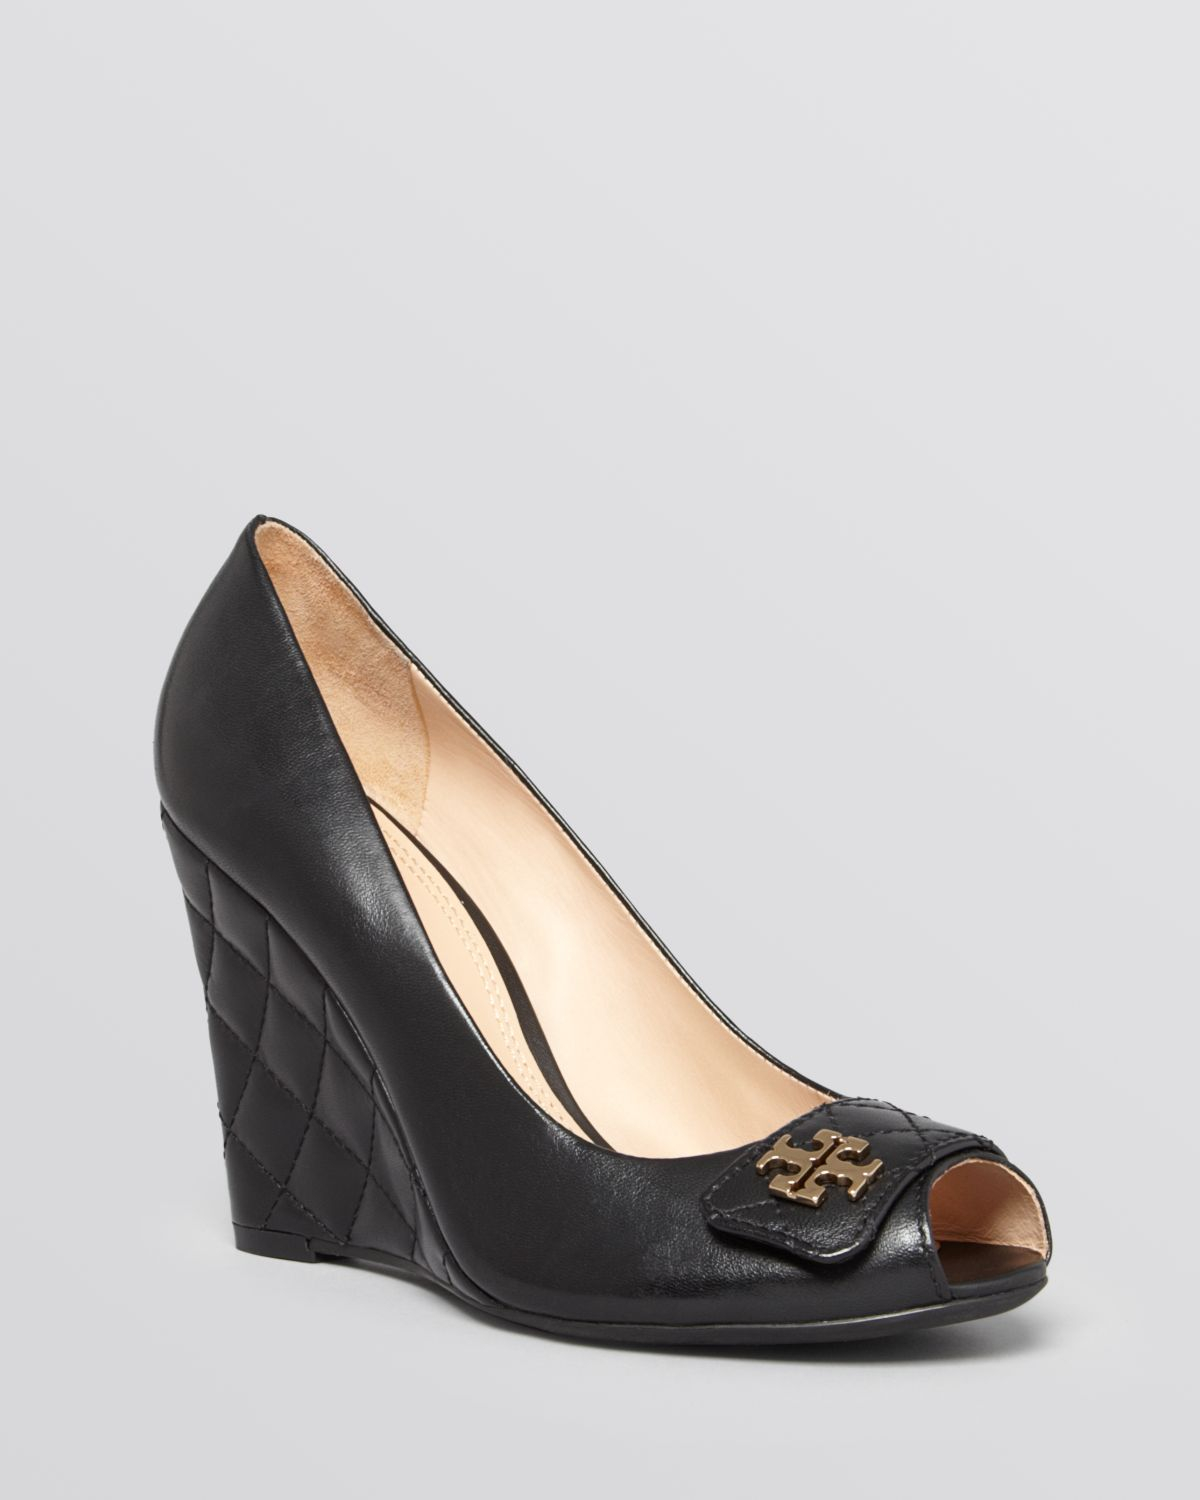 53cc4d1a1b34d8 Lyst - Tory Burch Peep Toe Wedge Pumps - Leila Quilted in Black